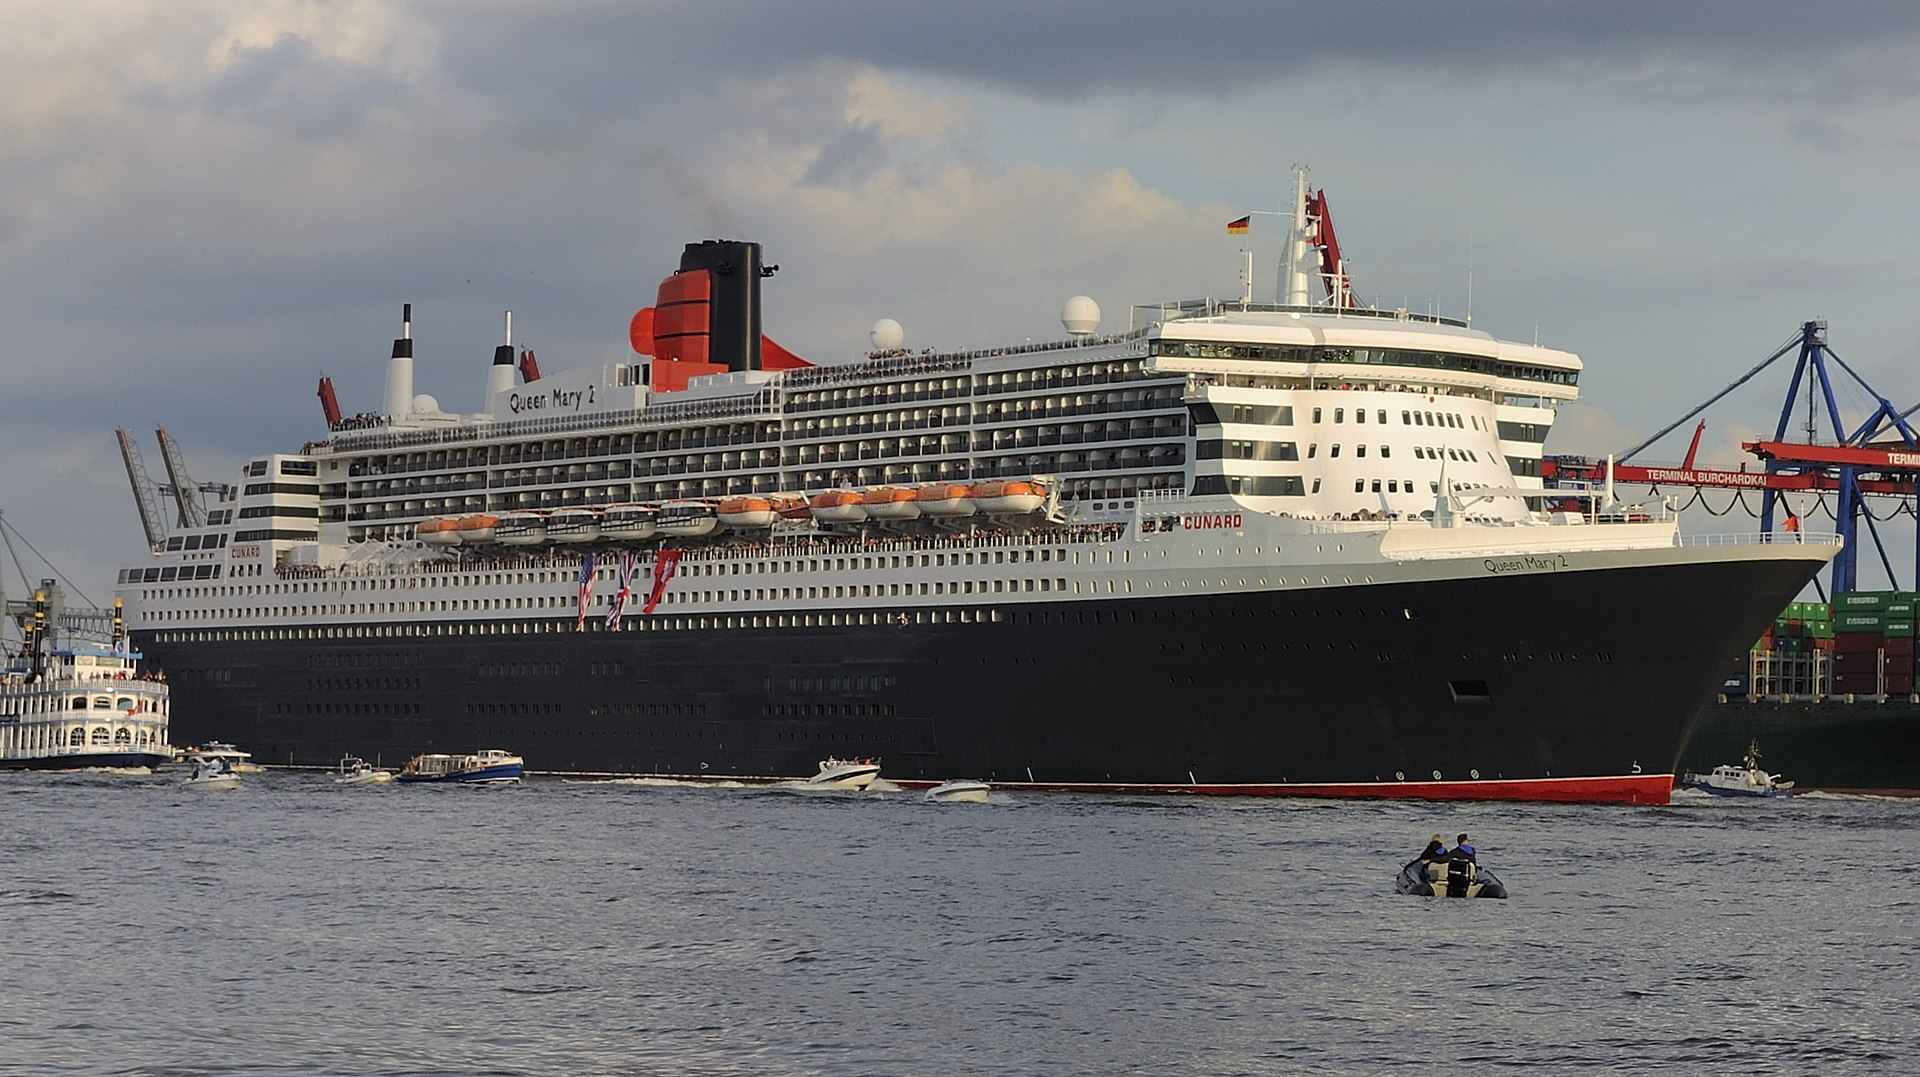 Queen Mary 2 – Wikipedia